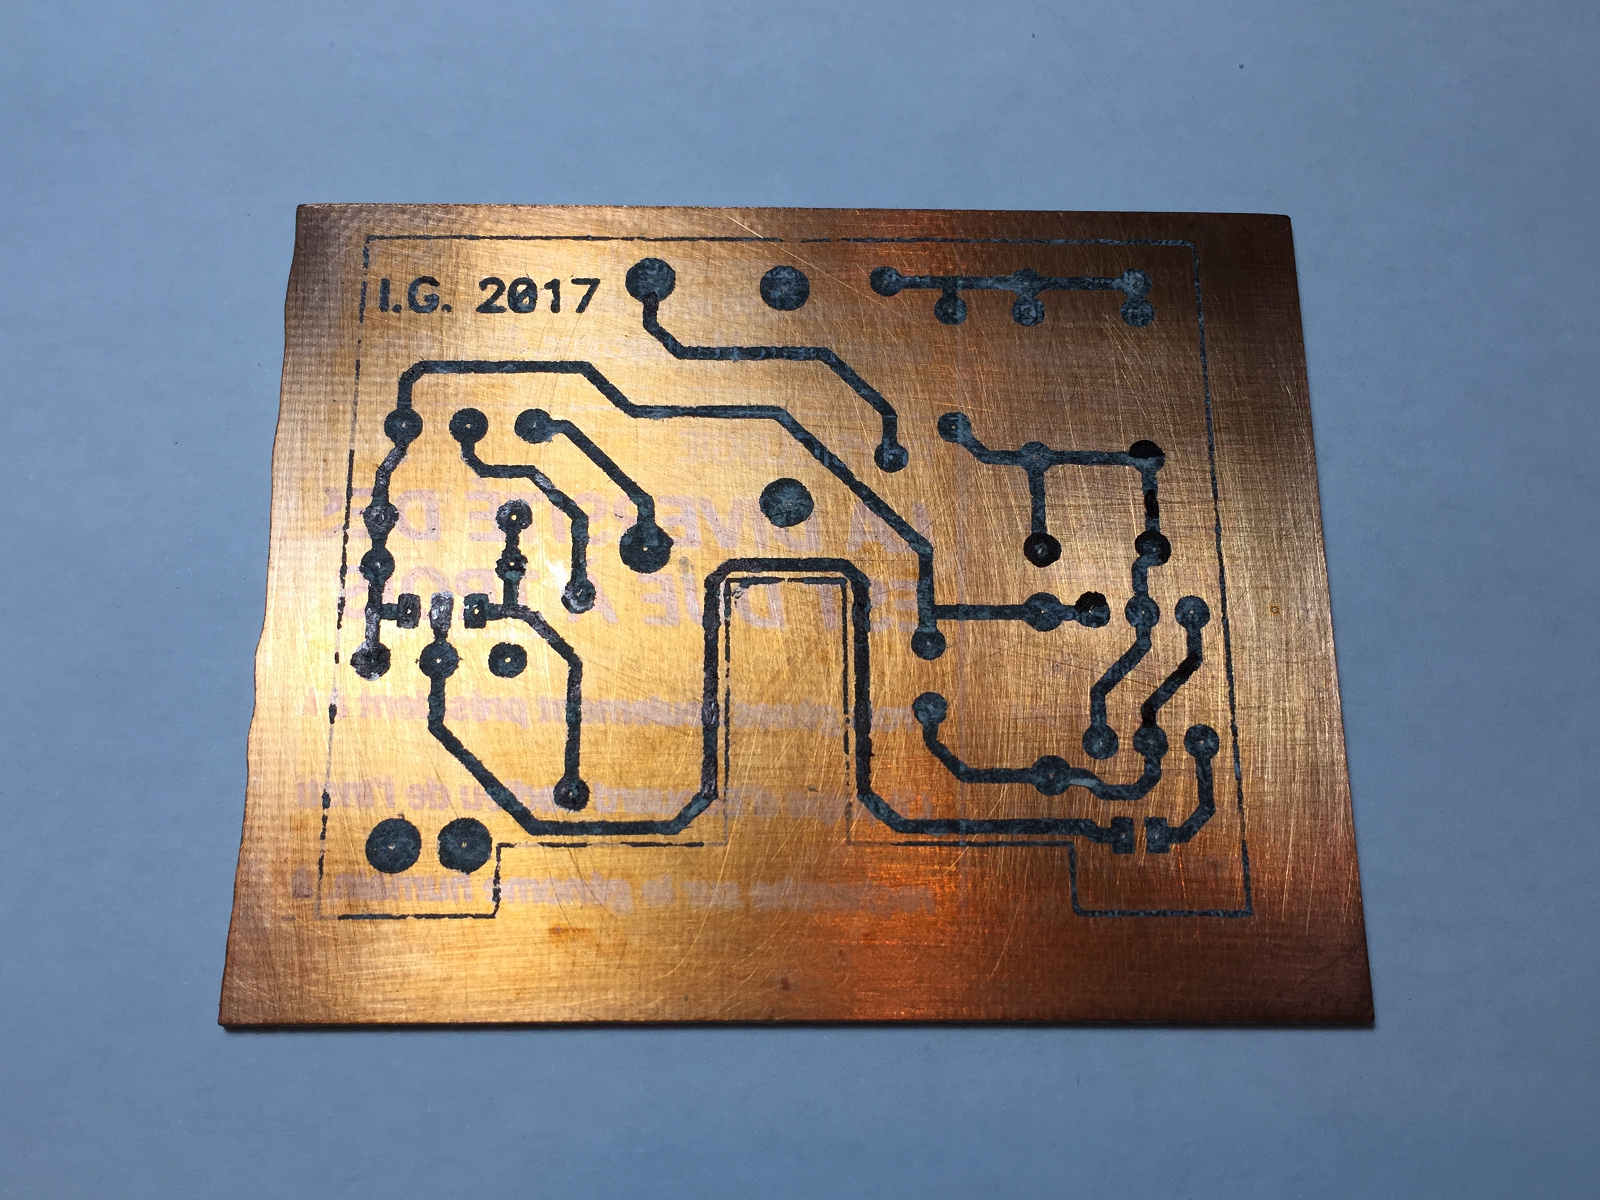 Etching Printed Circuits Boards At Home Example Circuit Board Using Mainly Surface Mount Electronic Not All Toner Transferred Well So I Had To Re Touch Some Areas With